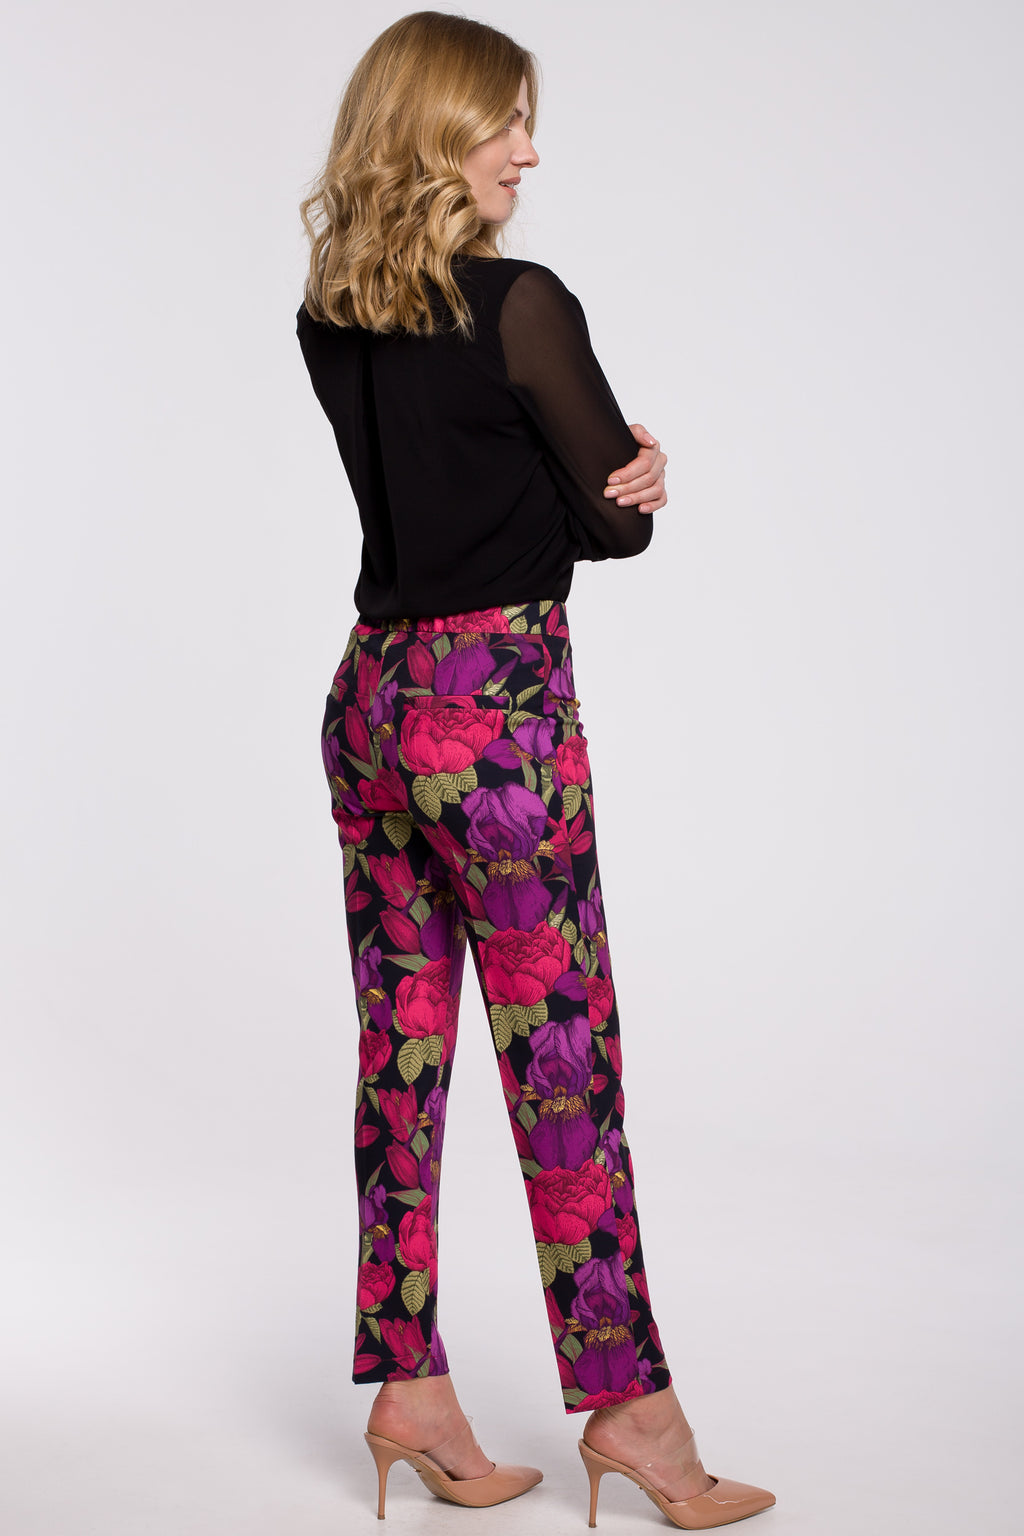 Purple Floral Print Slim Fit Trousers - So Chic Boutique